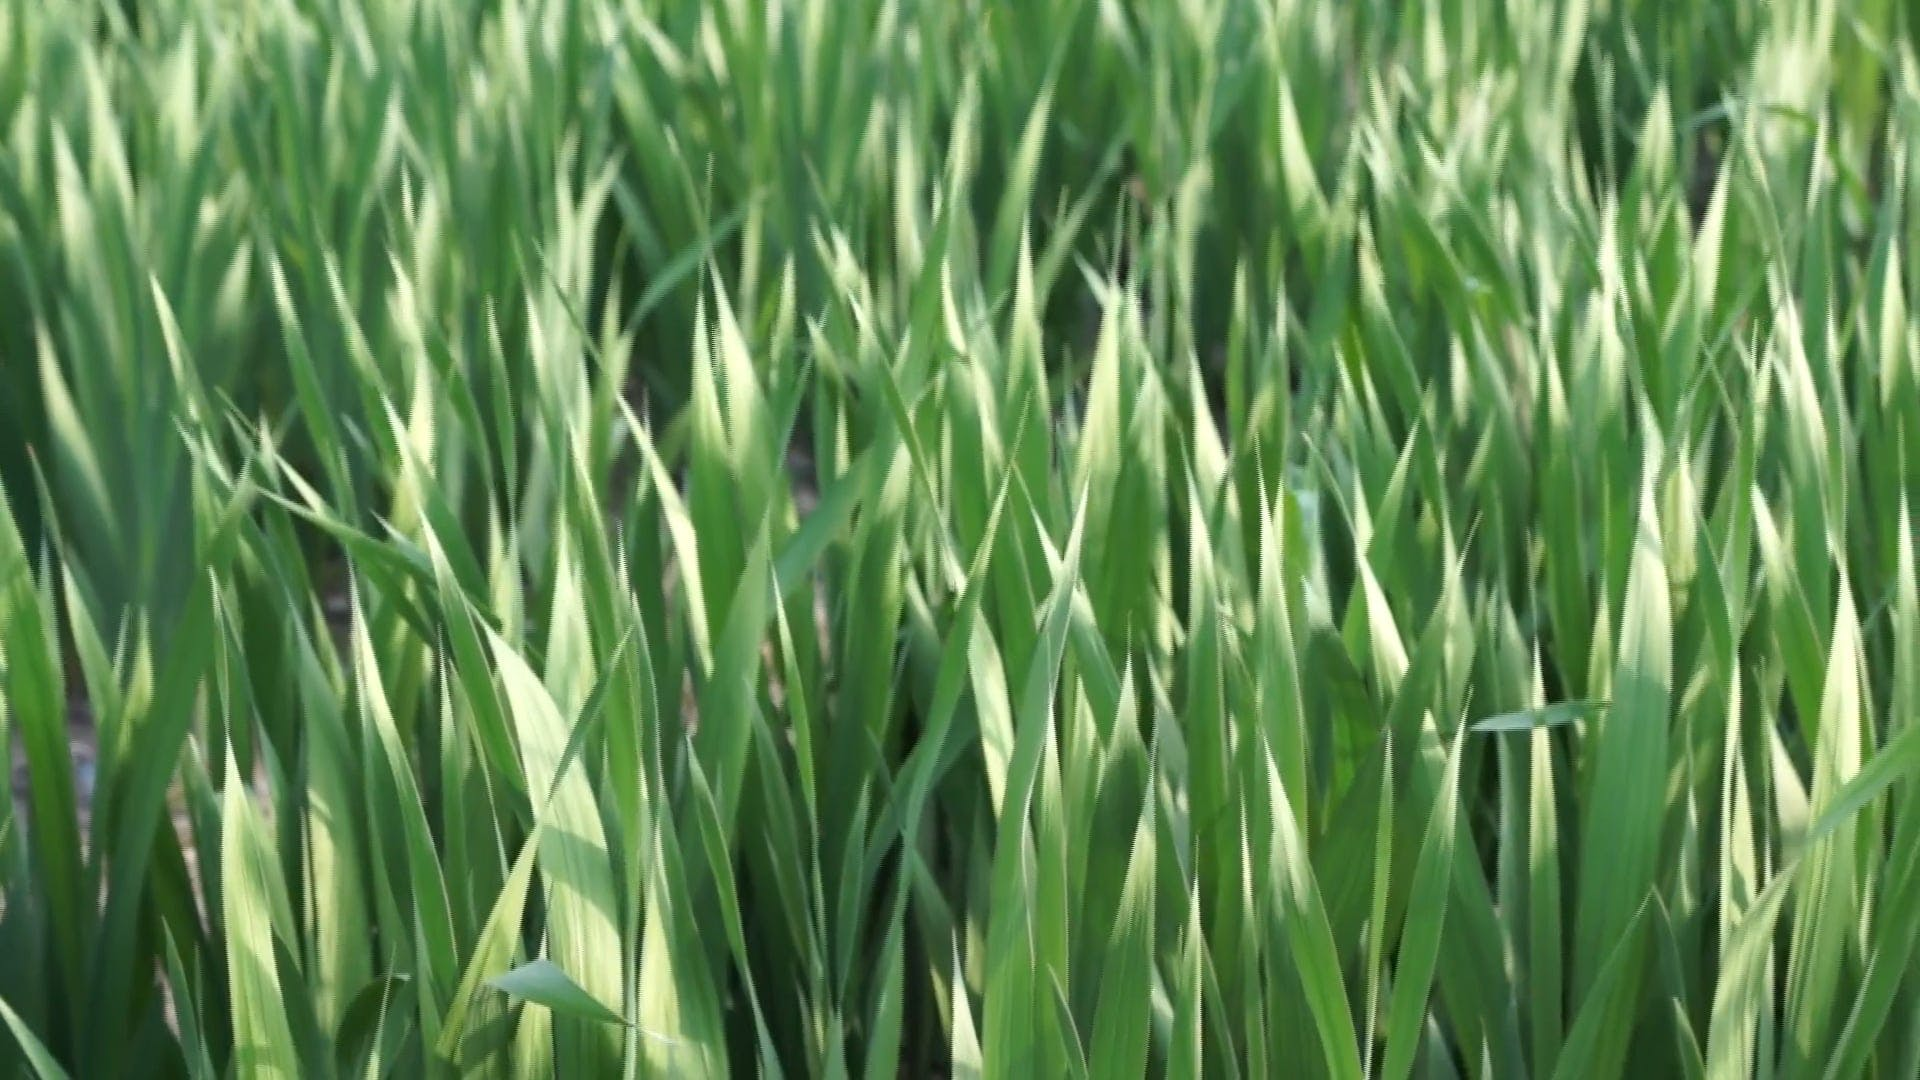 Field Filled With Green Grass